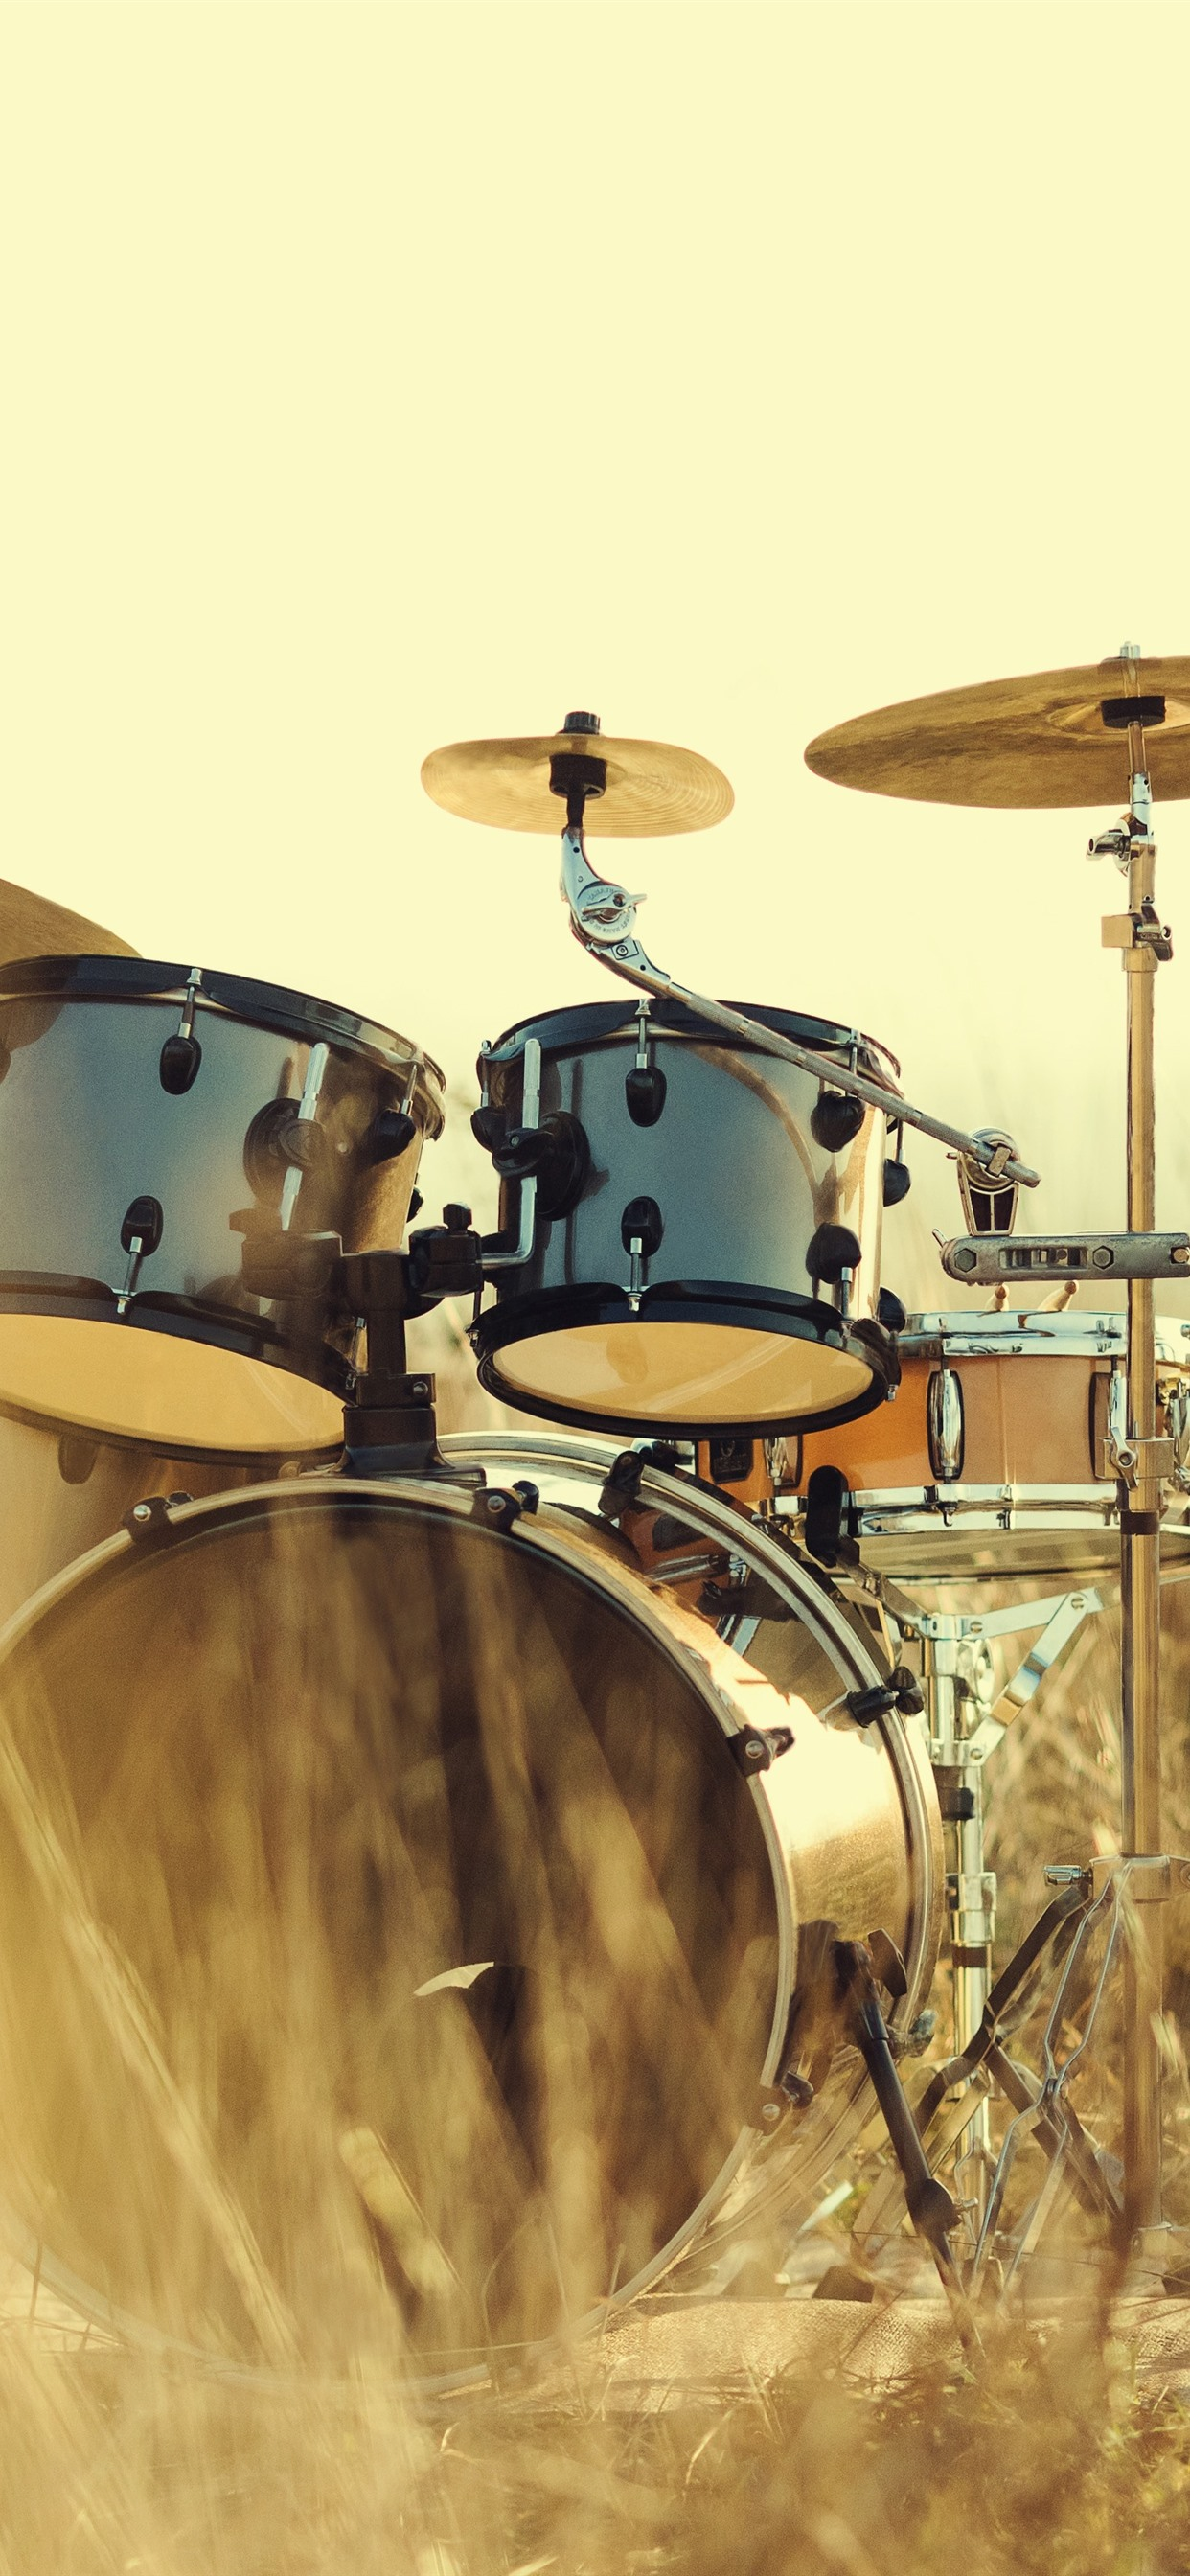 Wallpaper Drums Instrument Grass 5120x2880 Uhd 5k Picture